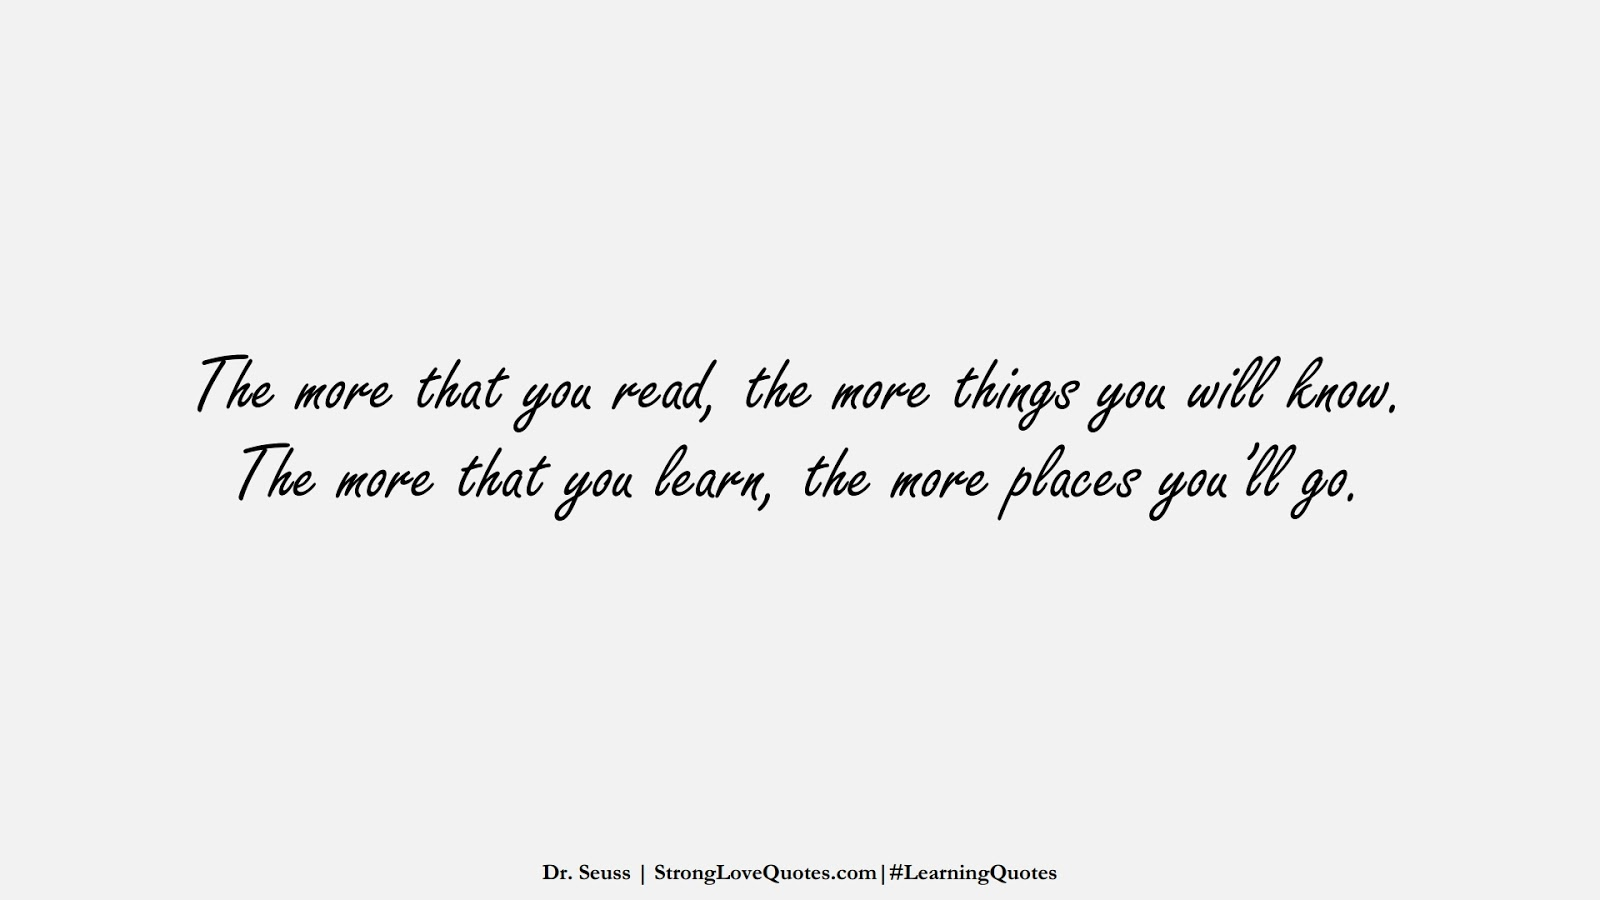 The more that you read, the more things you will know. The more that you learn, the more places you'll go. (Dr. Seuss);  #LearningQuotes